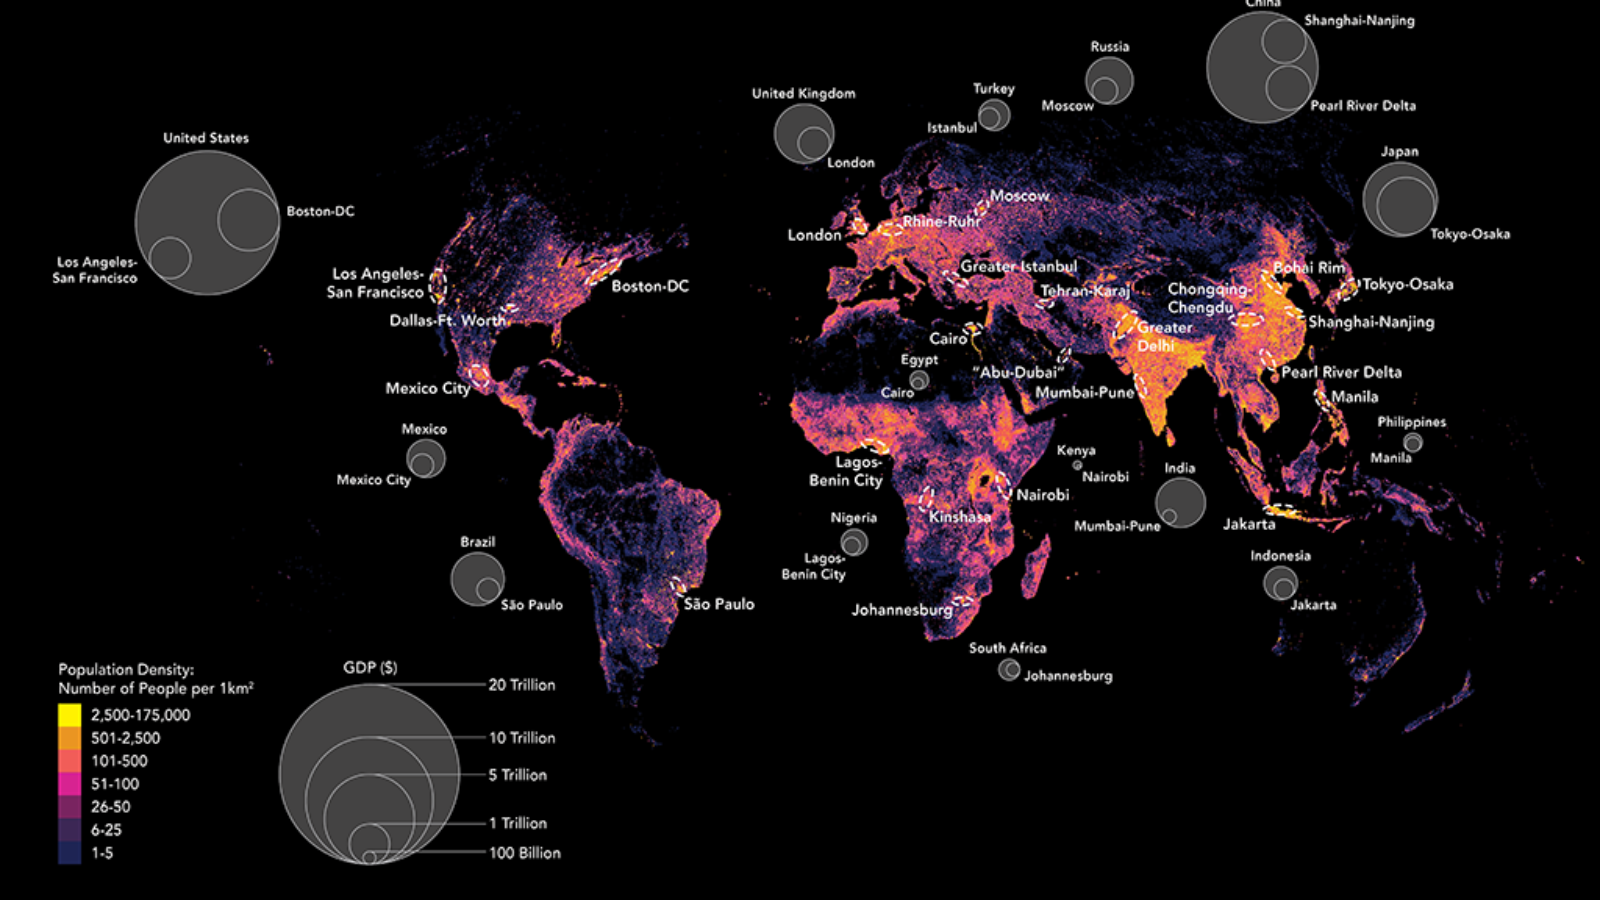 Map of Global Population Density